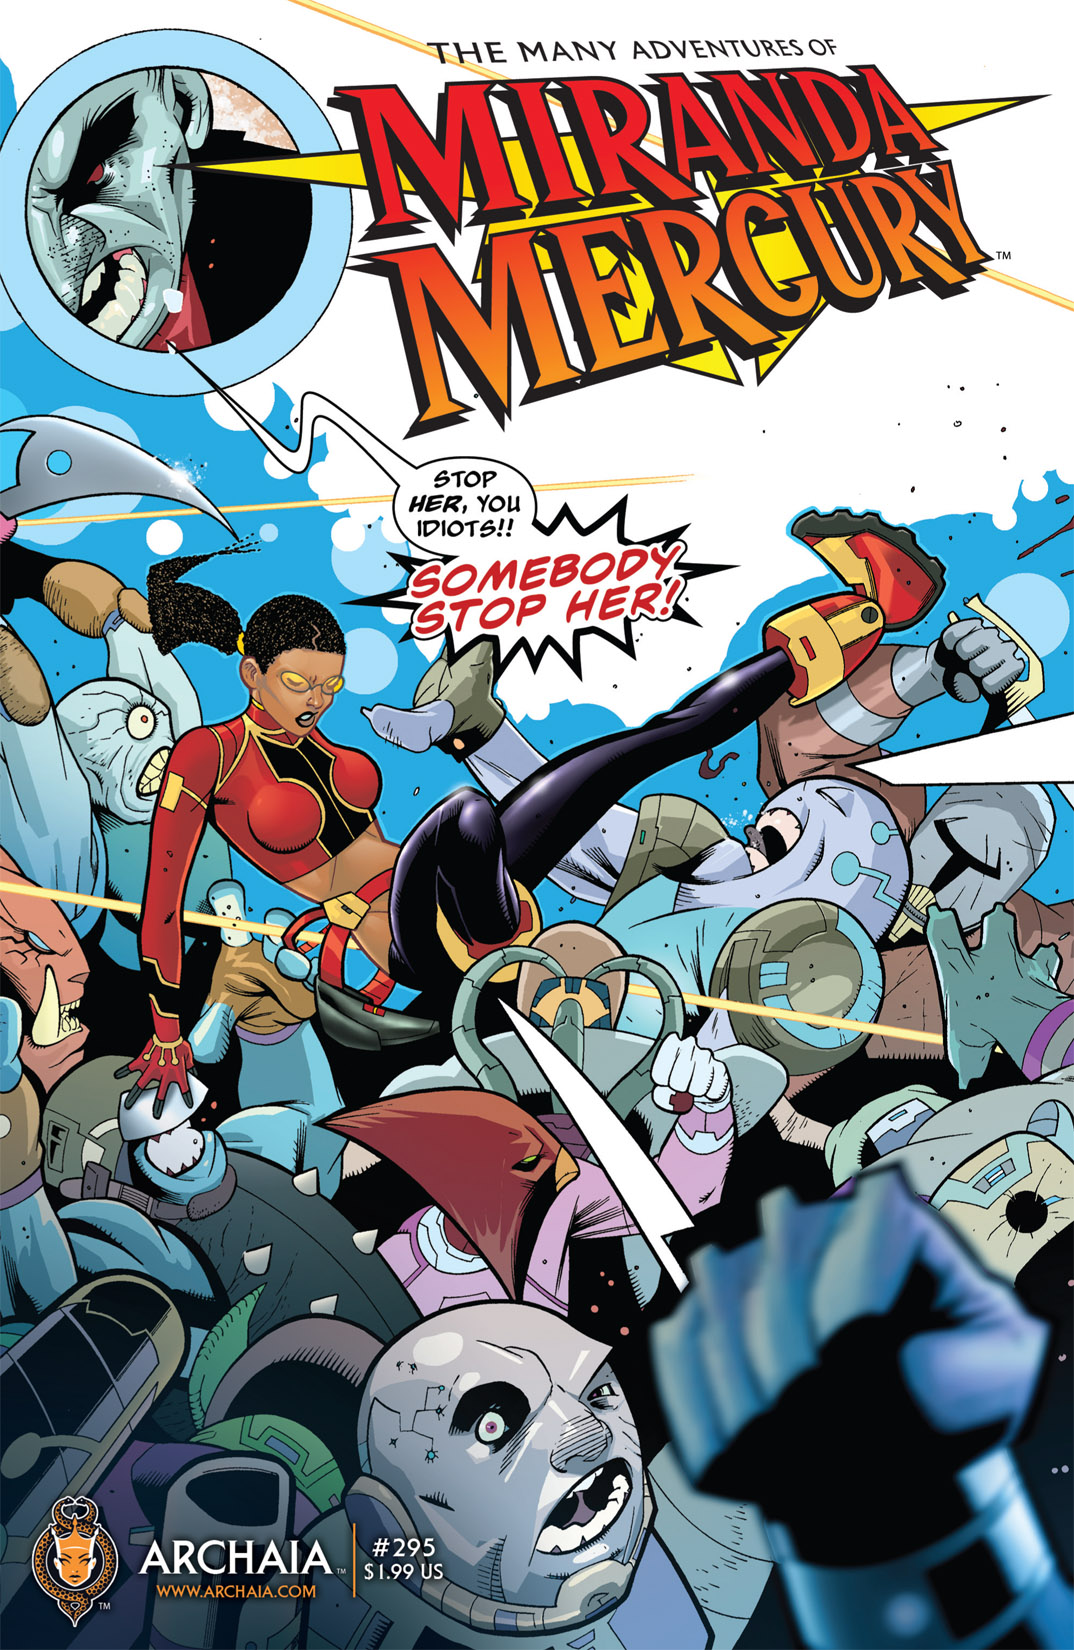 Read online The Many Adventures of Miranda Mercury: Time Runs Out comic -  Issue # TPB - 12